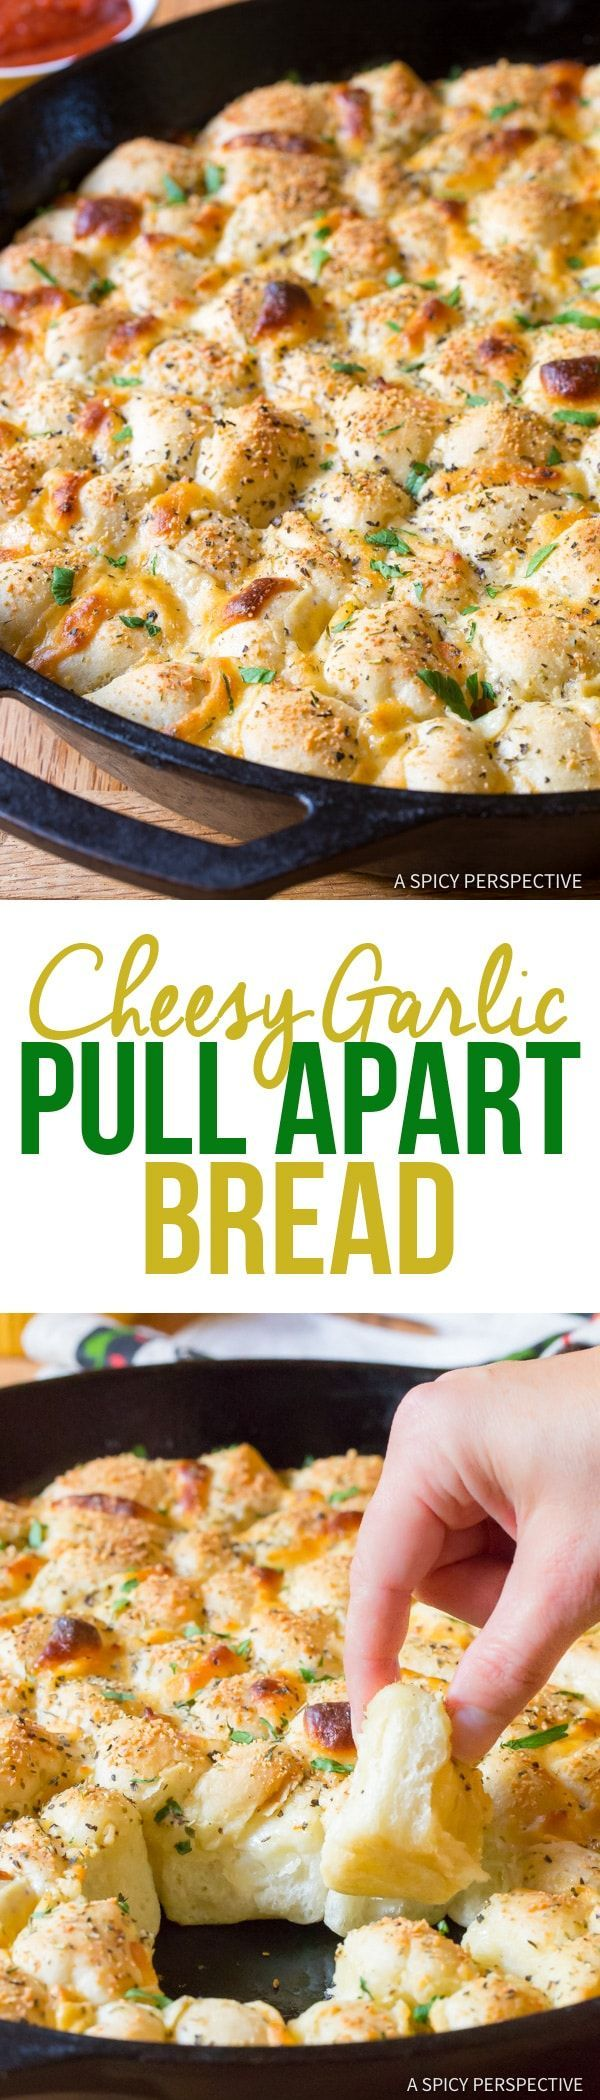 6-Ingredient Cheesy Garlic Pull Apart Bread Recipe | A Spicy Perspective @landolakesktchn #addalittlegood #ad